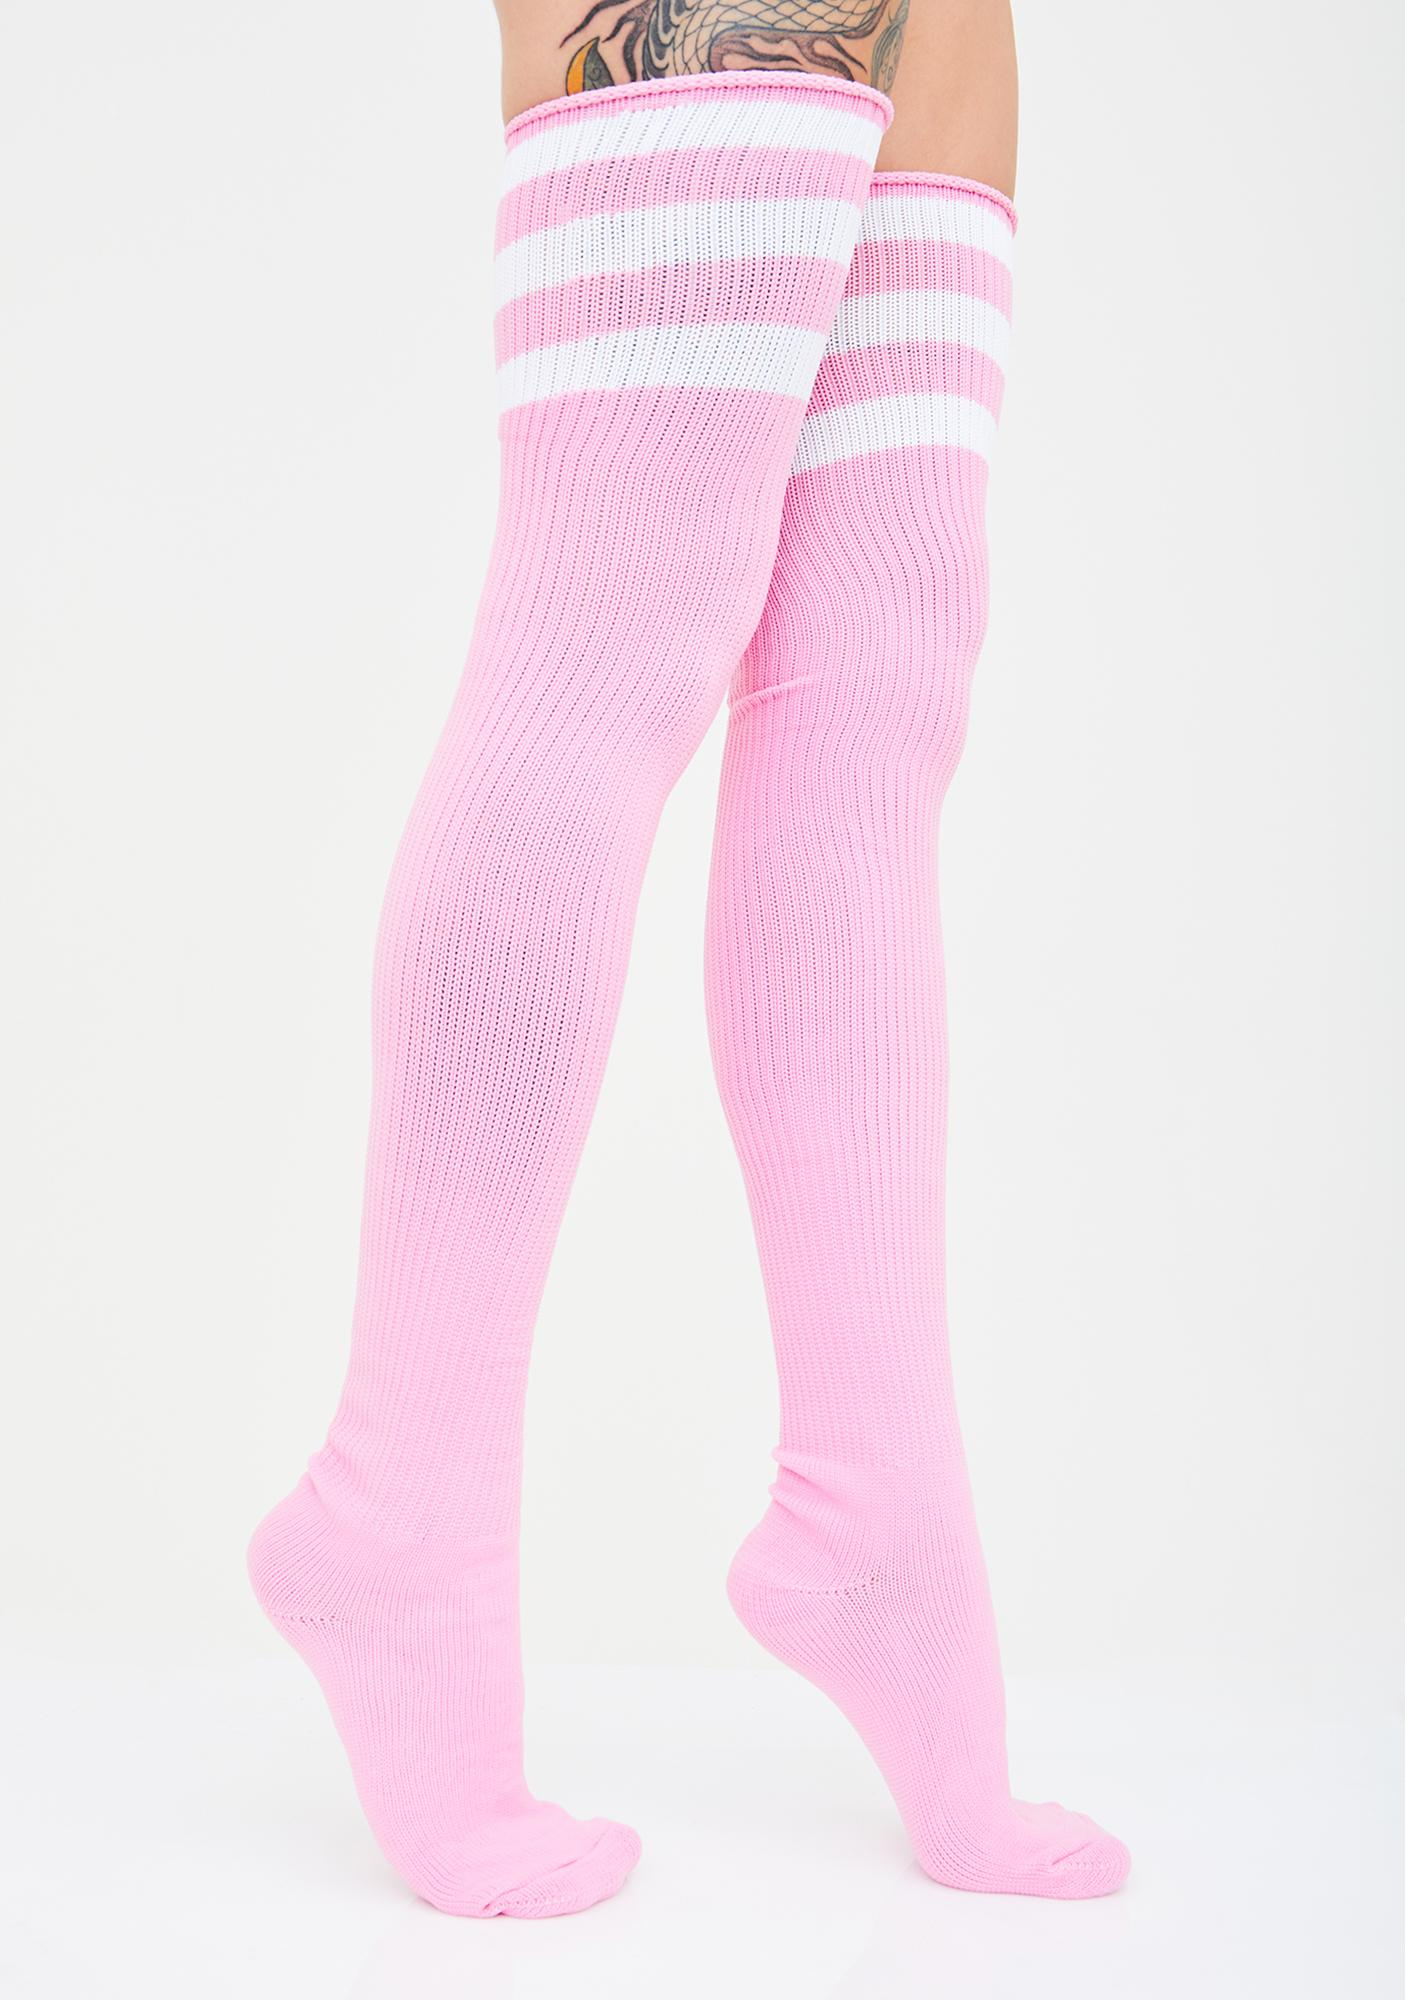 0867bc8c1b4f1 Three Stripe Thigh High Socks Athletic Pink | Dolls Kill